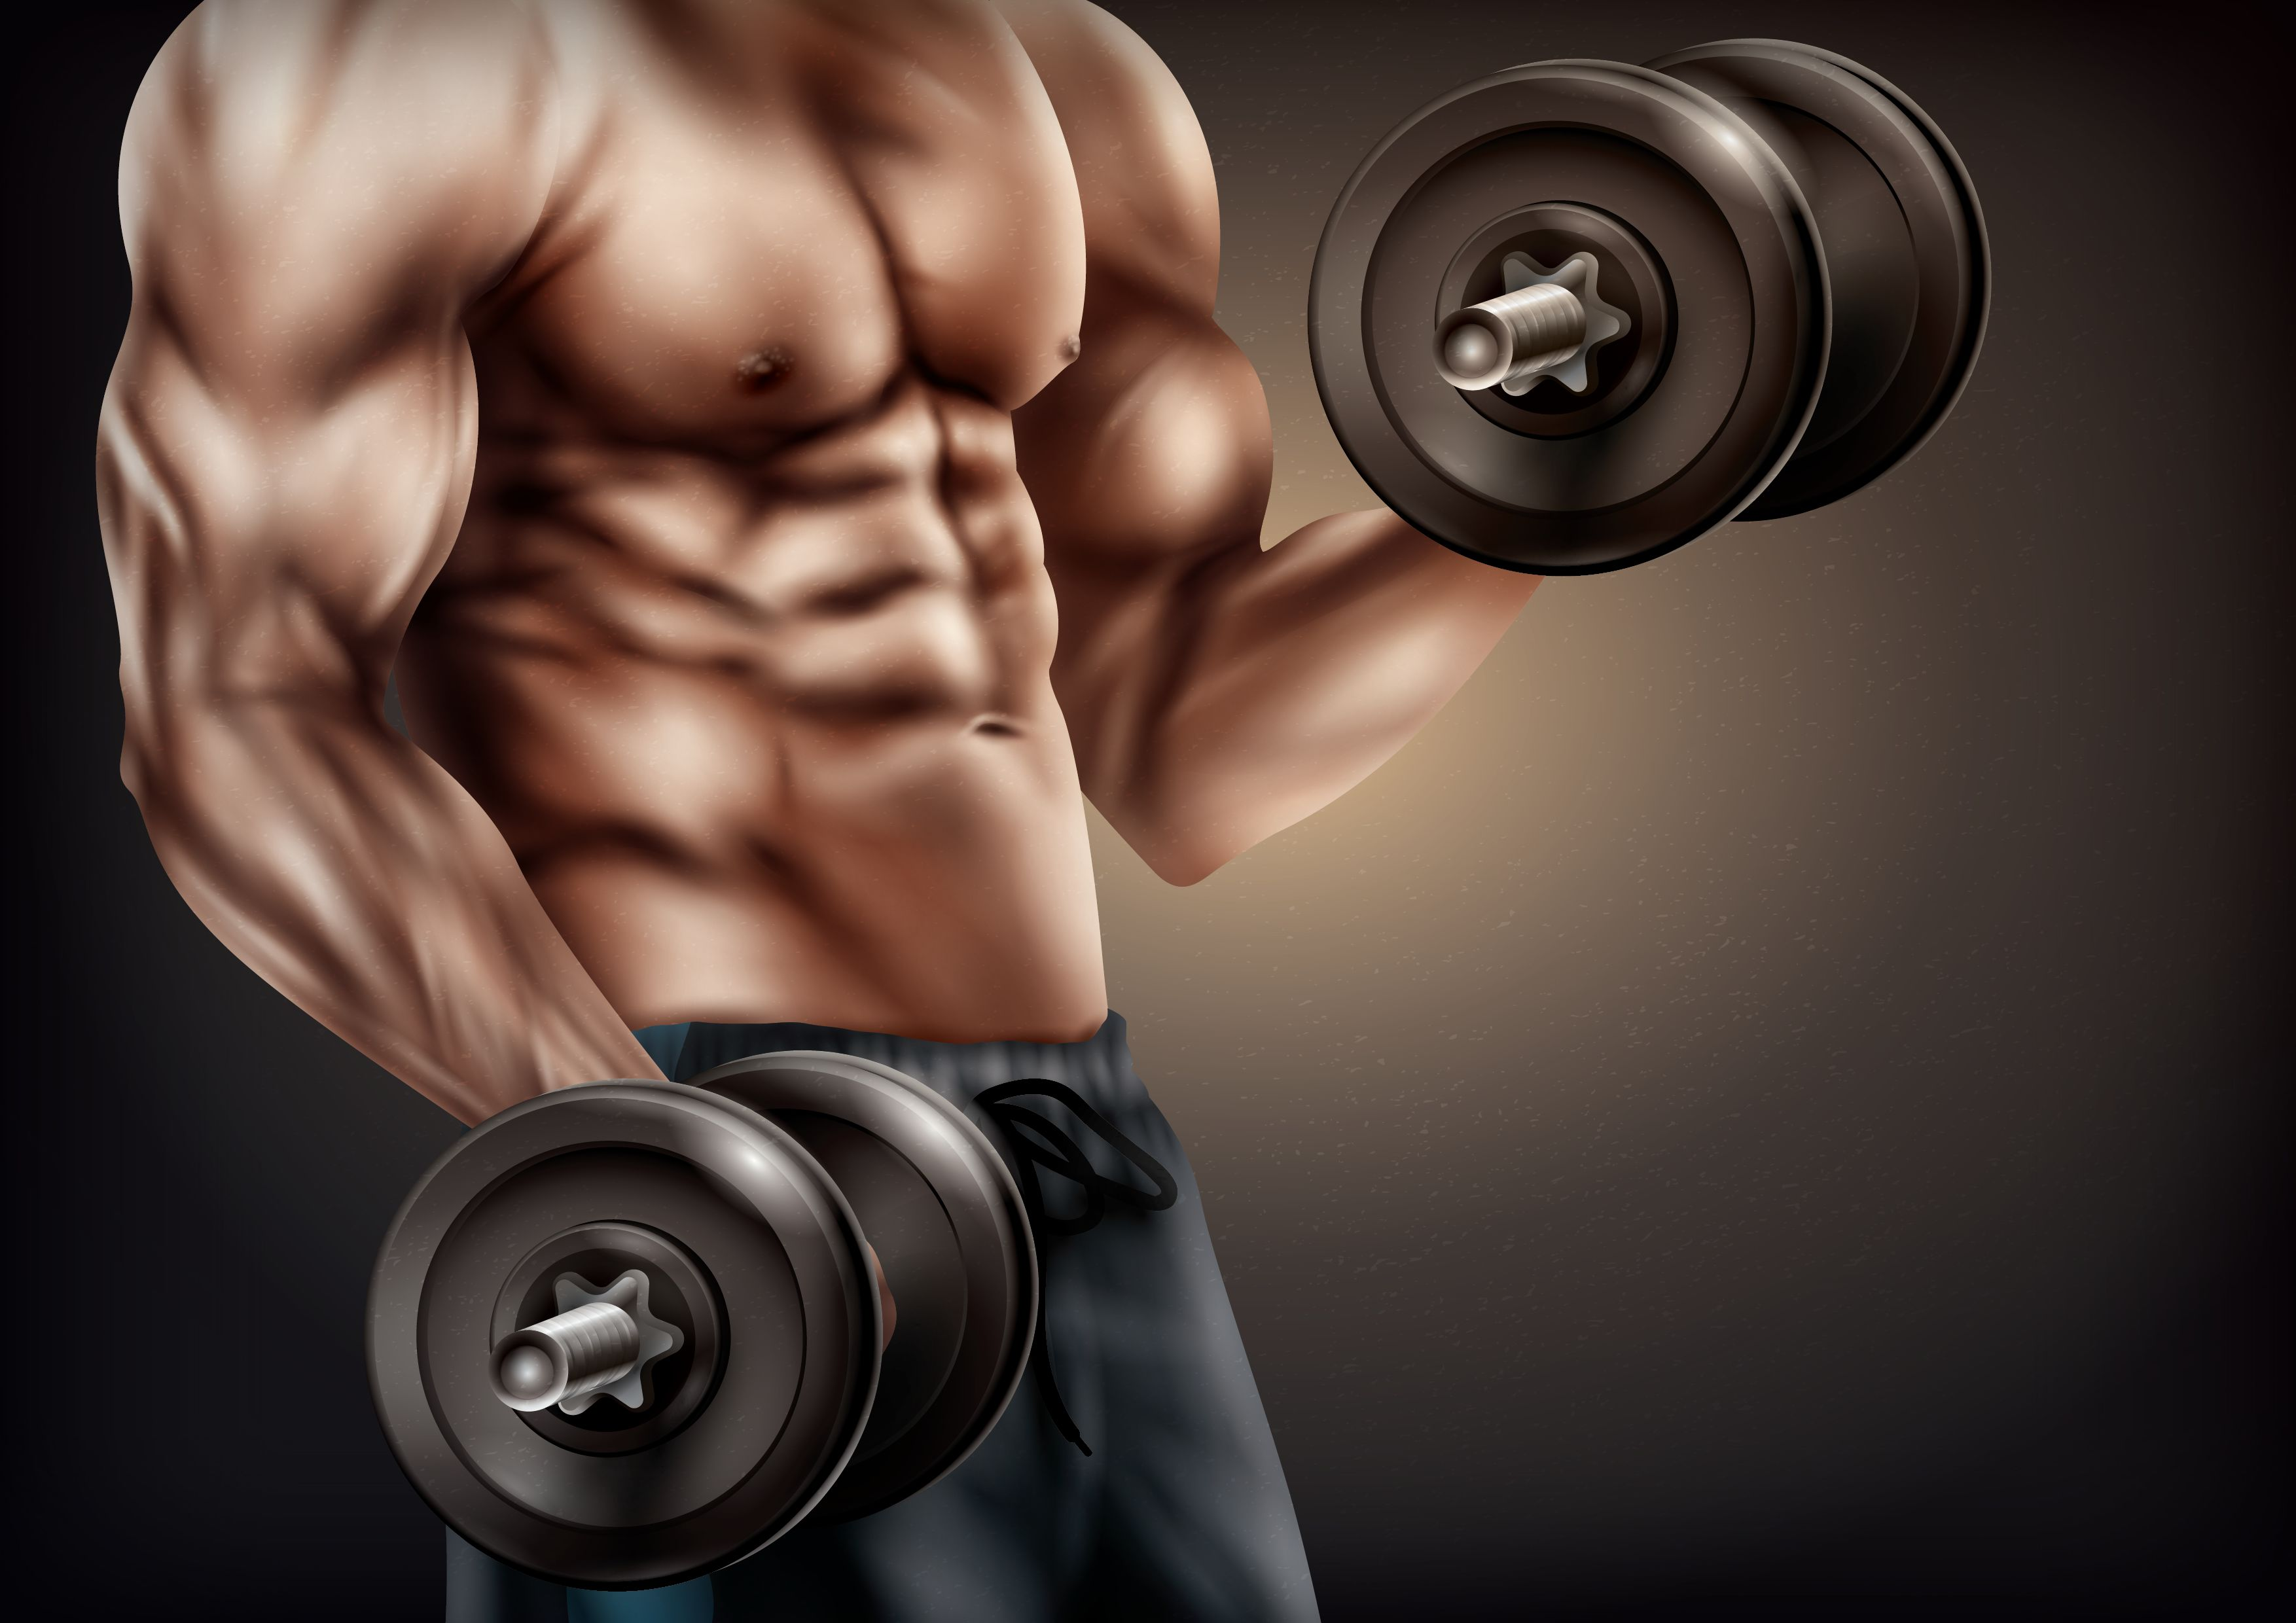 You Can Building Muscle even with Low T